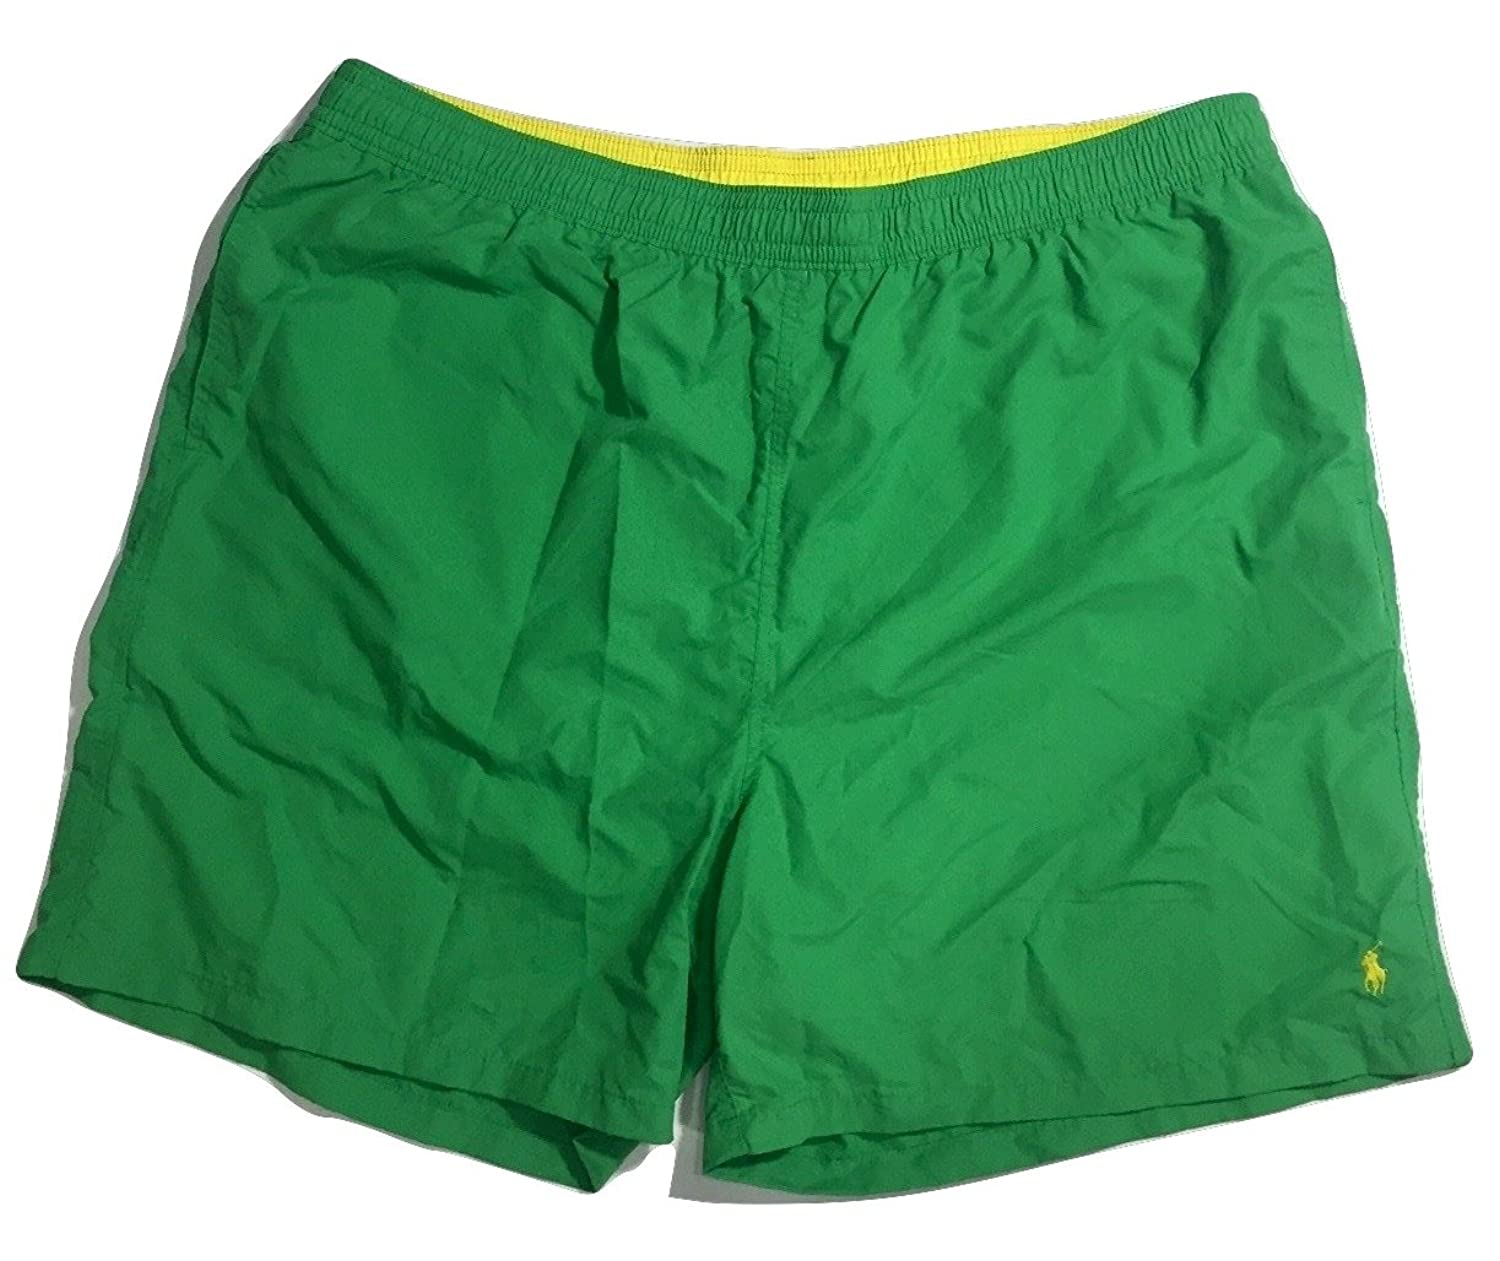 2b89a6bf93 Polo Ralph Lauren Swim Trunk Shorts Mens 4LT Big Tall Green with Yellow Pony  cheap